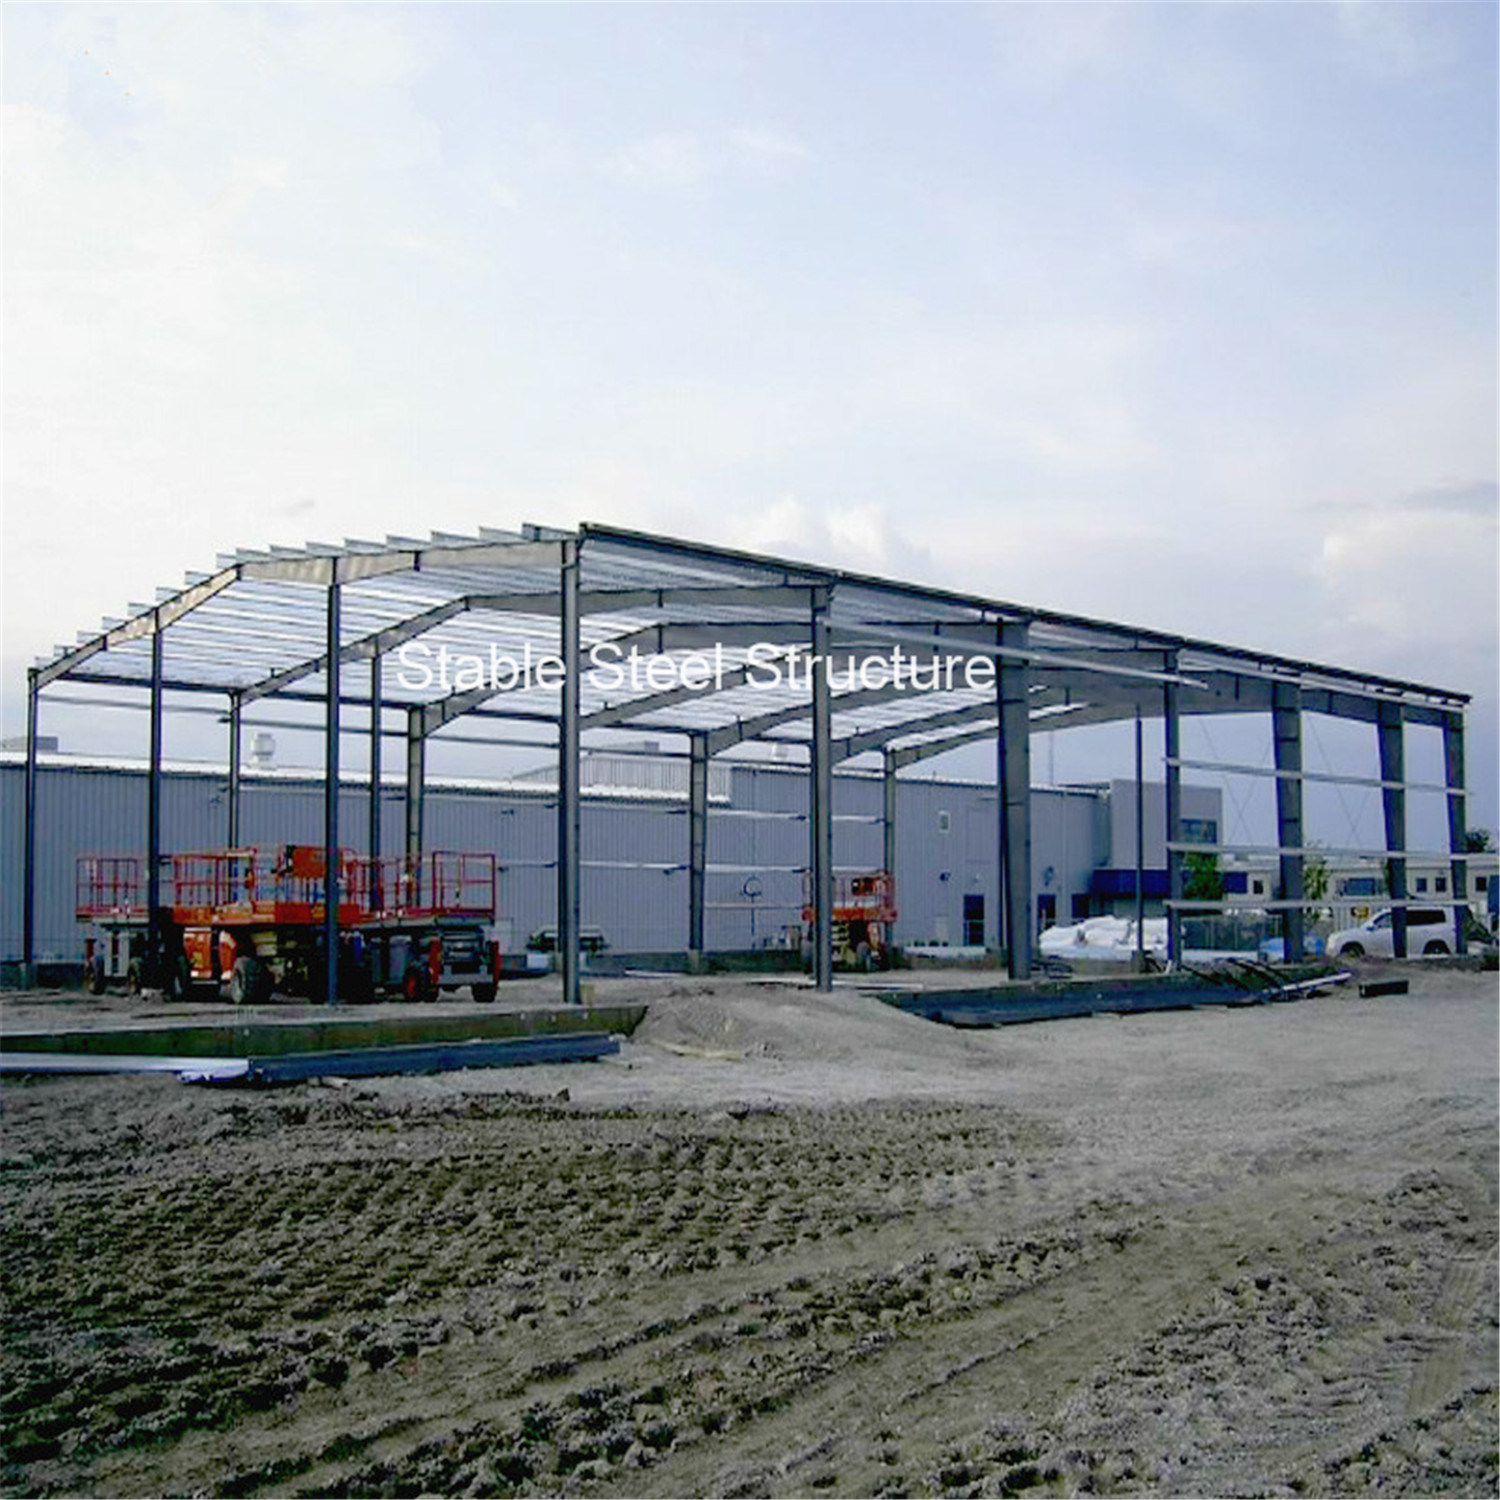 Wholesale Suppliers In Tanzania Hot Item Steel Structures Pre Manufactured Buildings In Tanzania